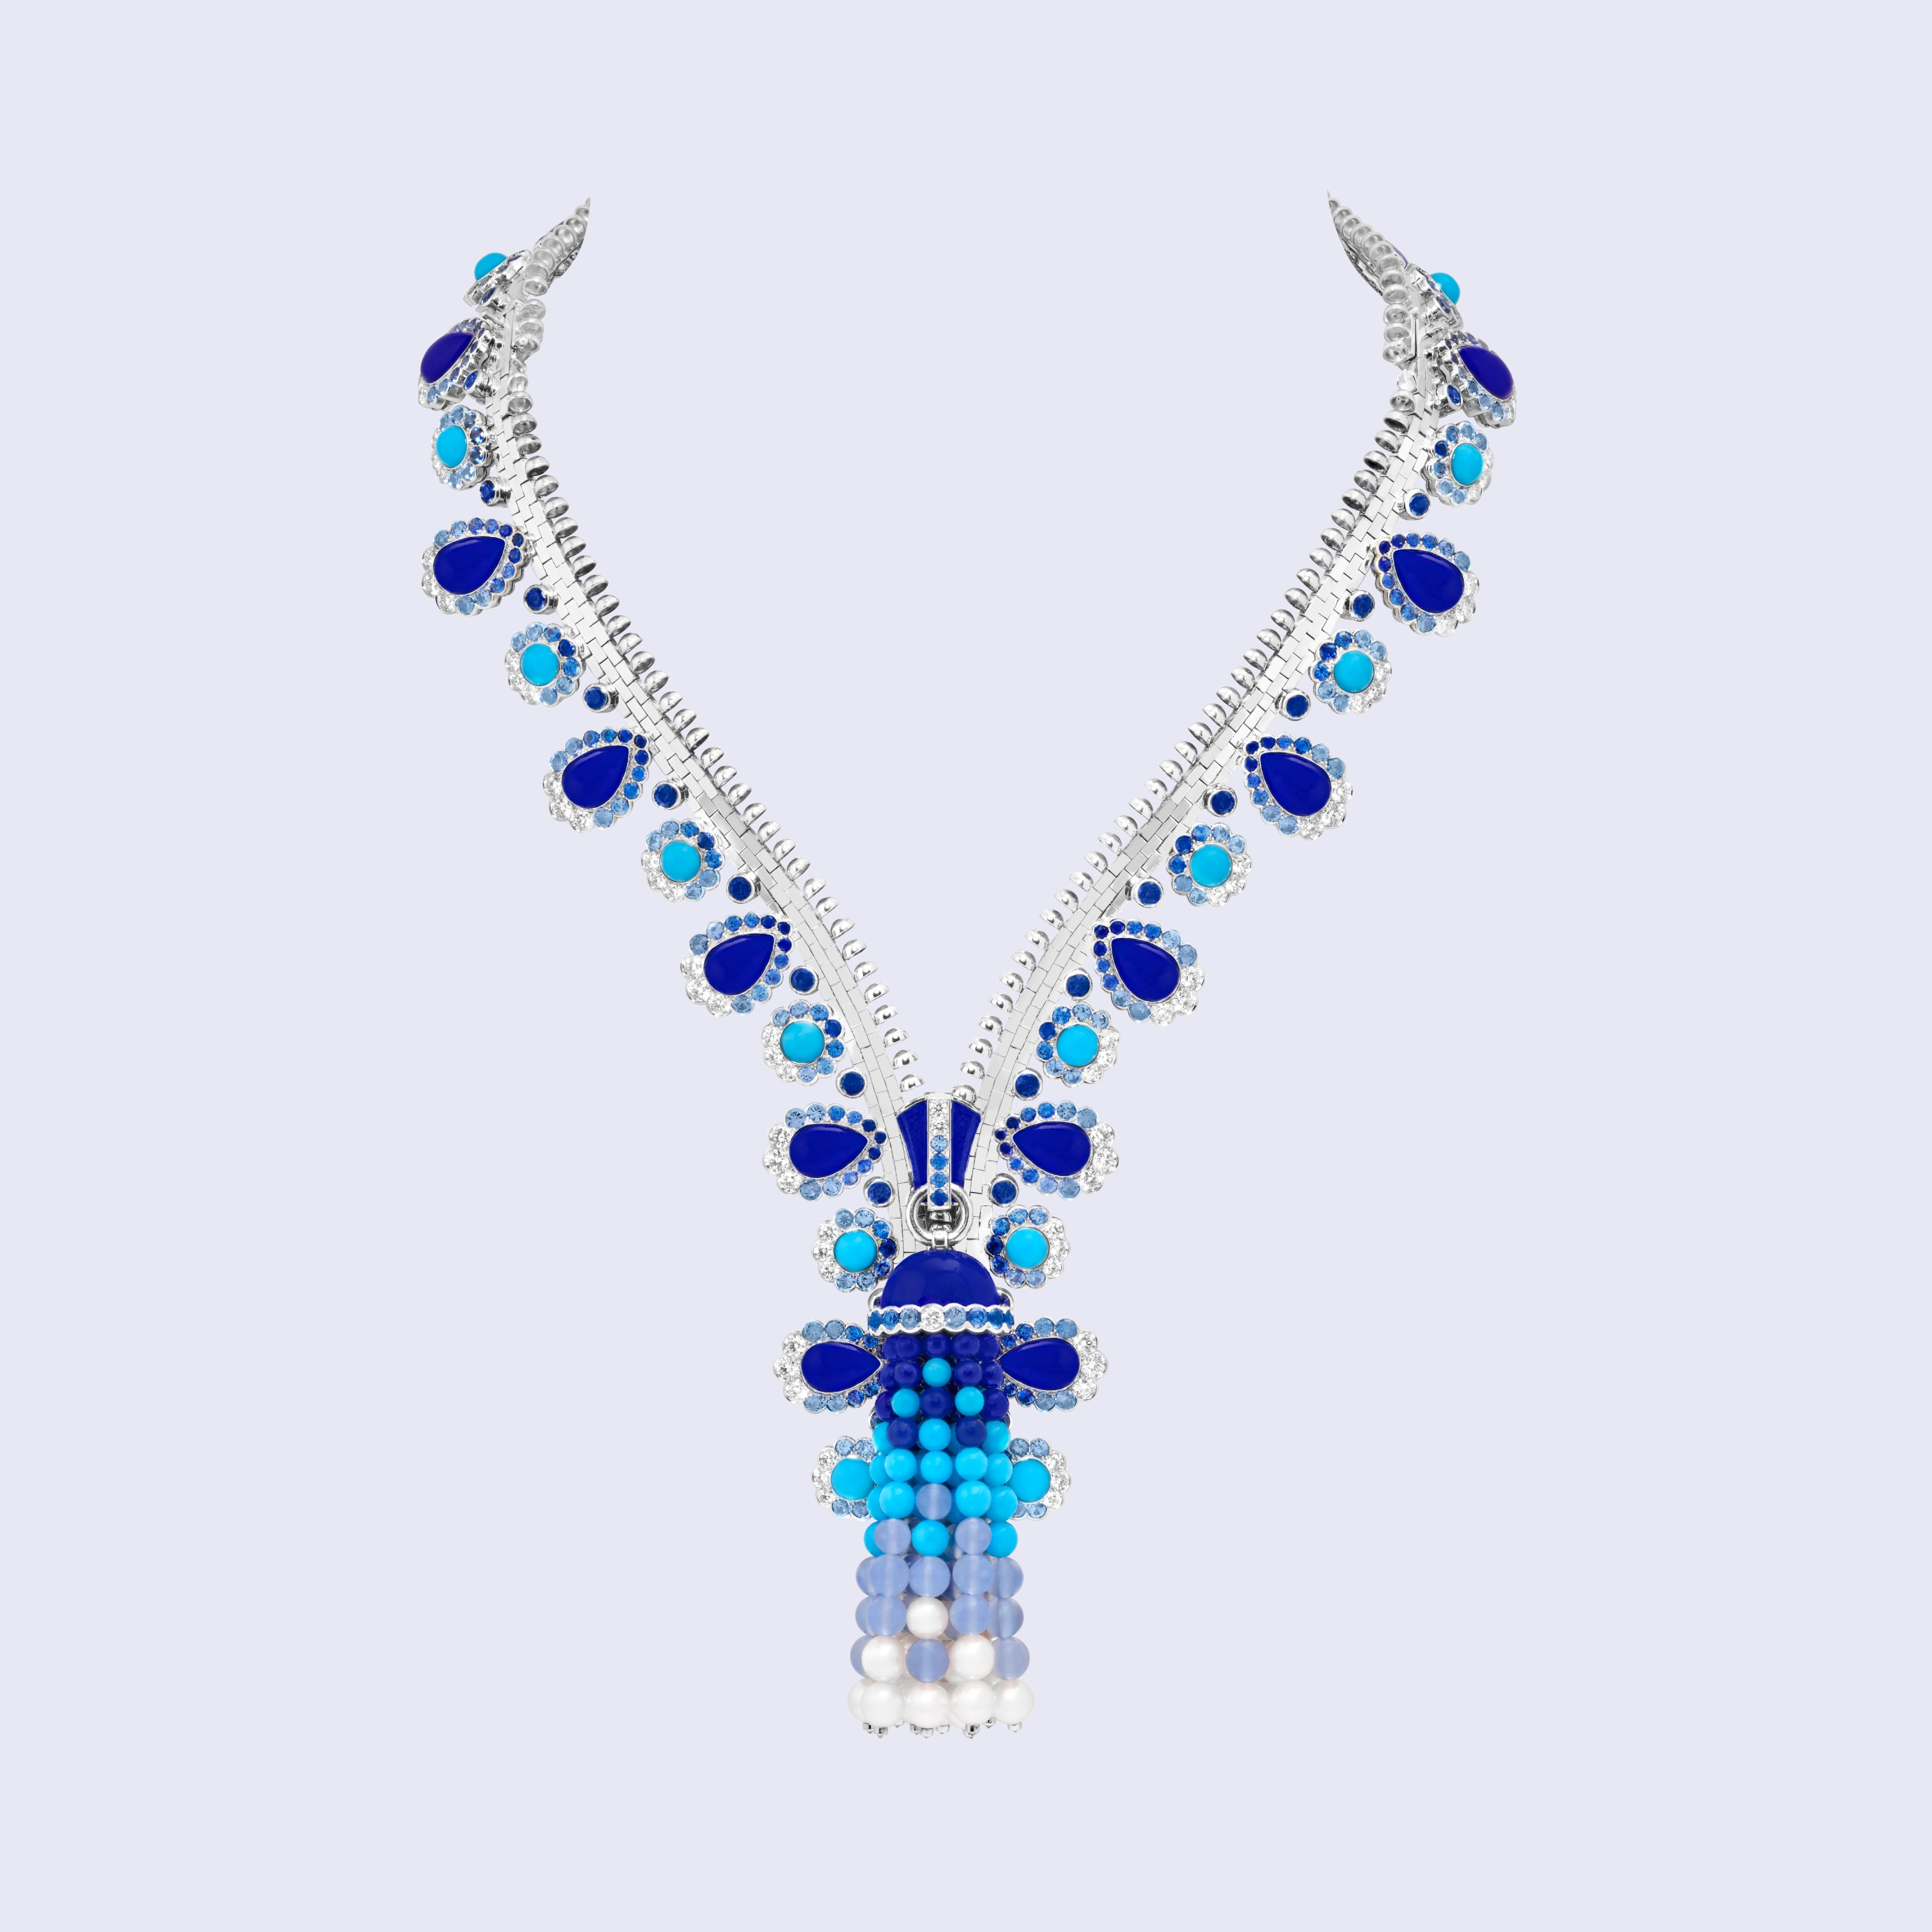 Zip Antique Orient necklace transformable into a bracelet, White gold, sapphires, lapis lazuli, turquoise, chalcedony, white cultured pearls, diamonds, Zip collection, Van Cleef & Arpels